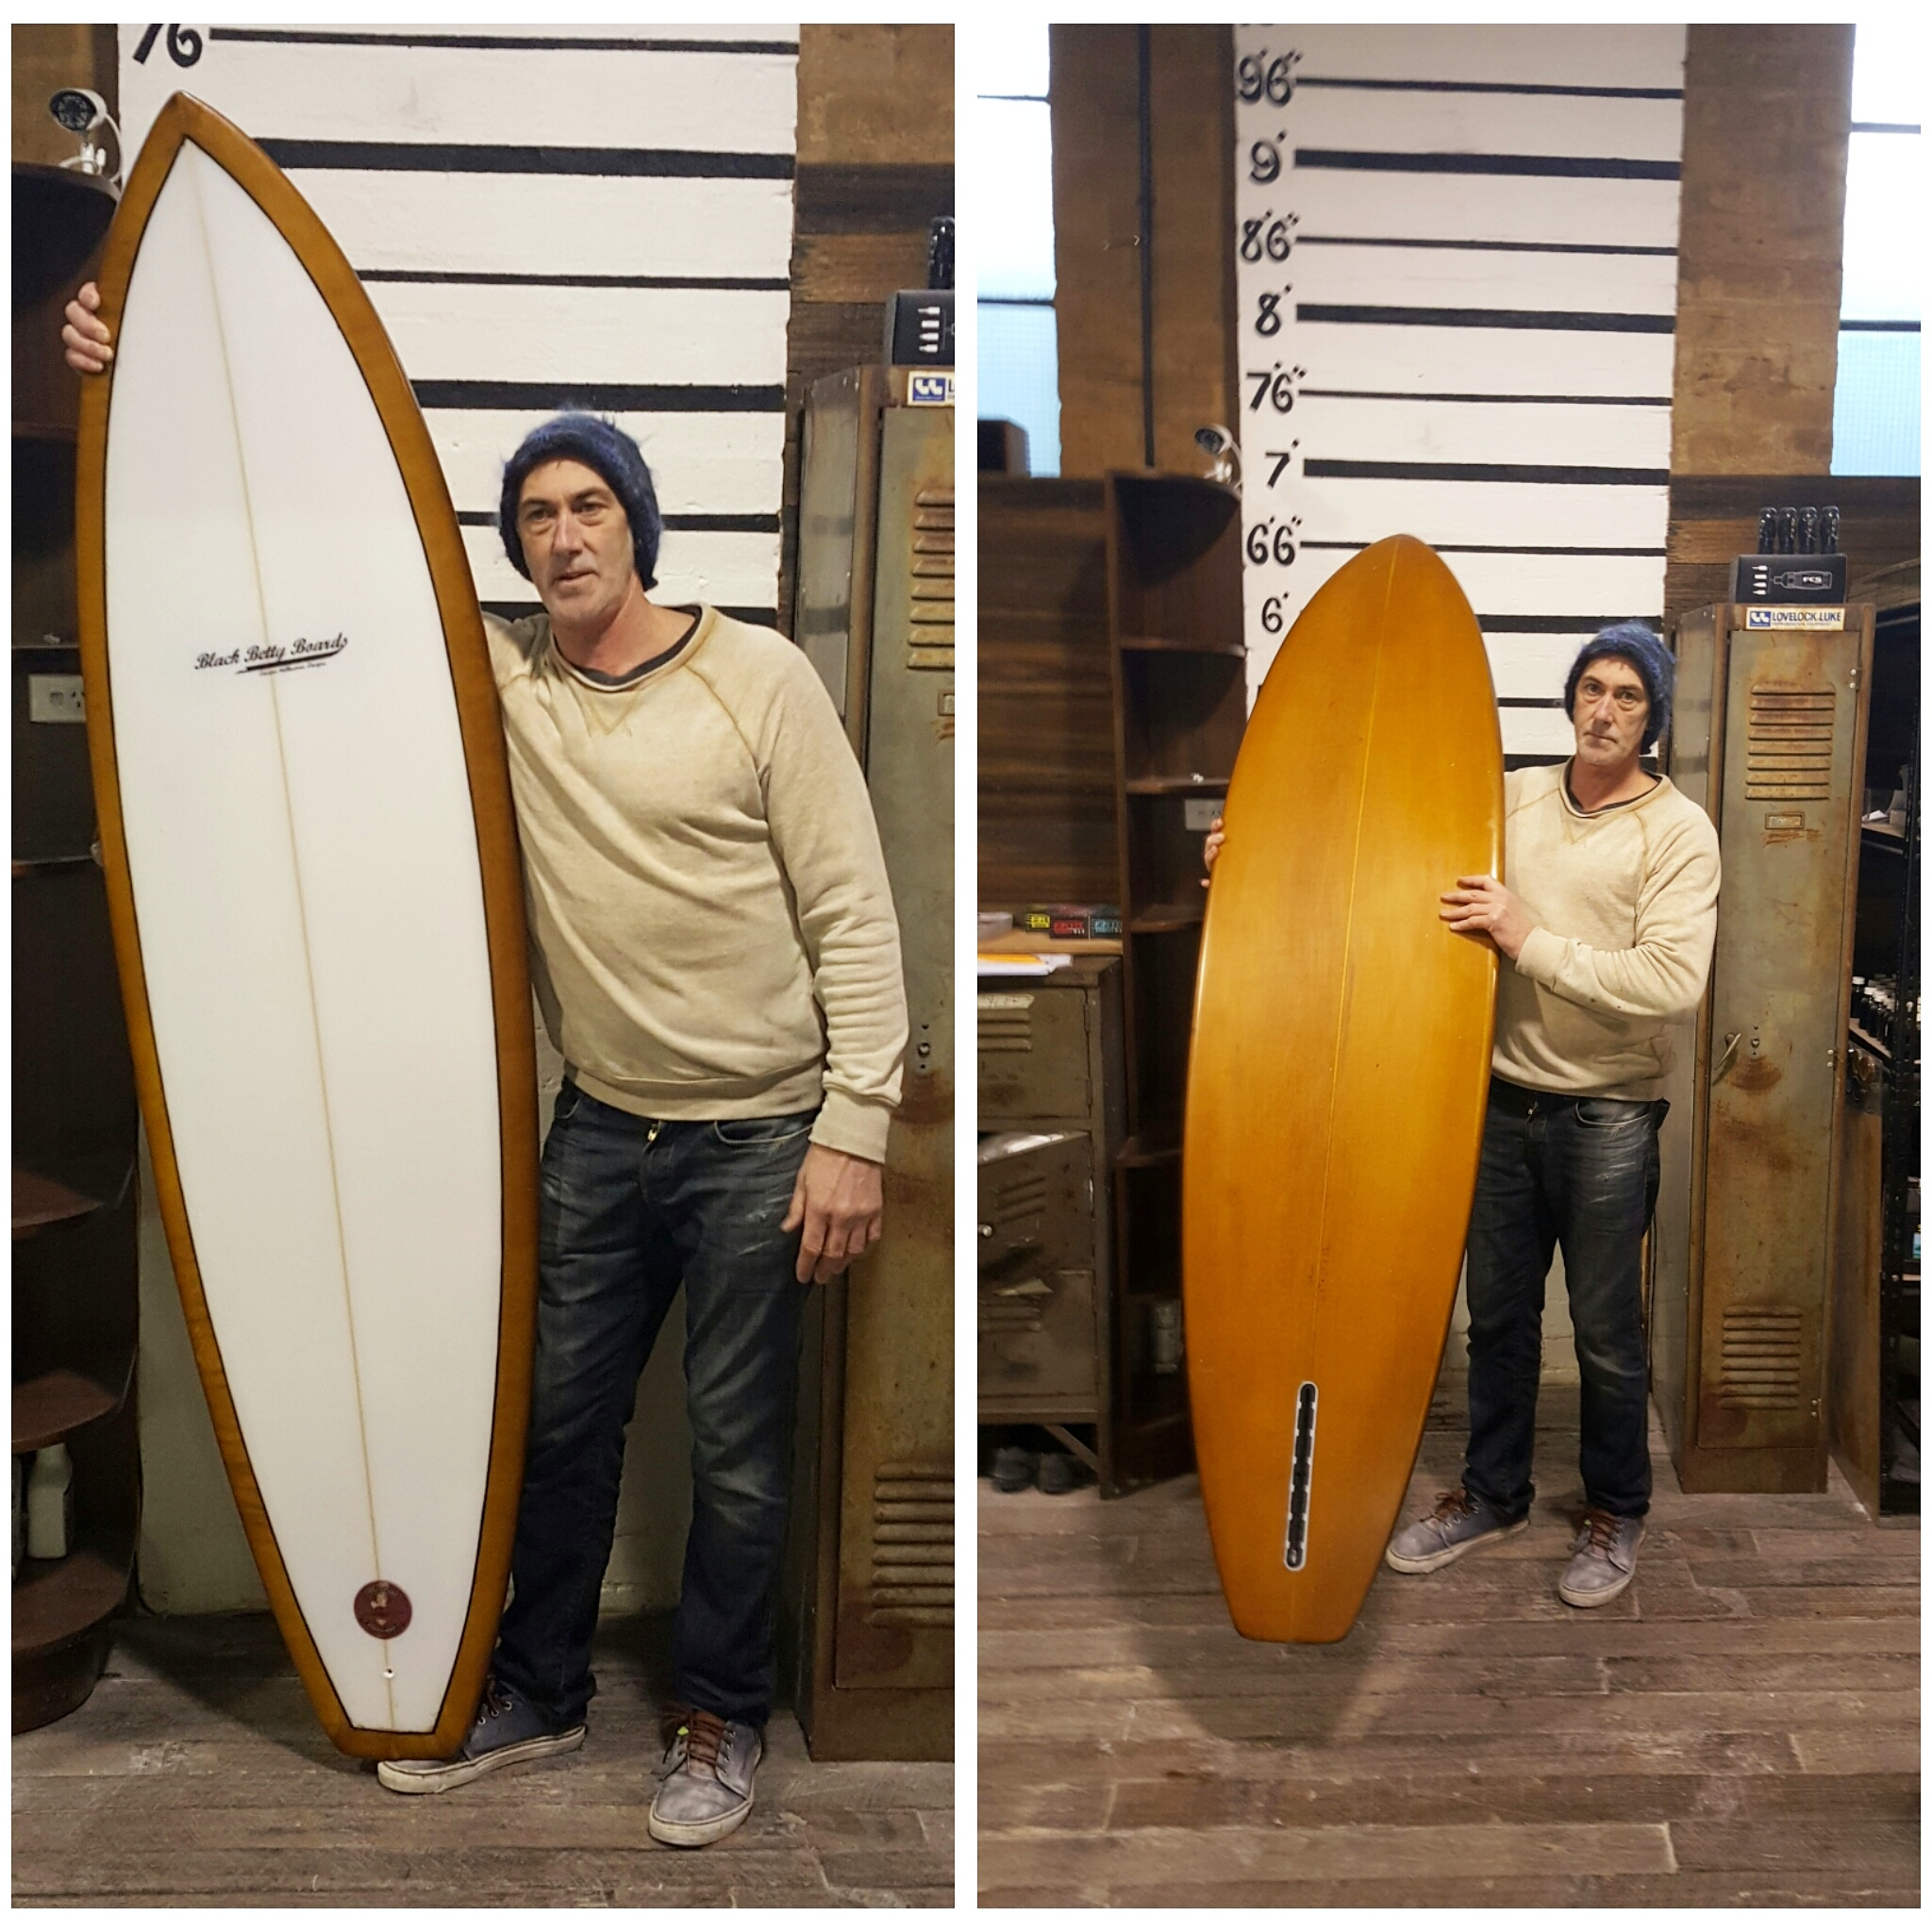 Make Your Own Surfboard Course July 4